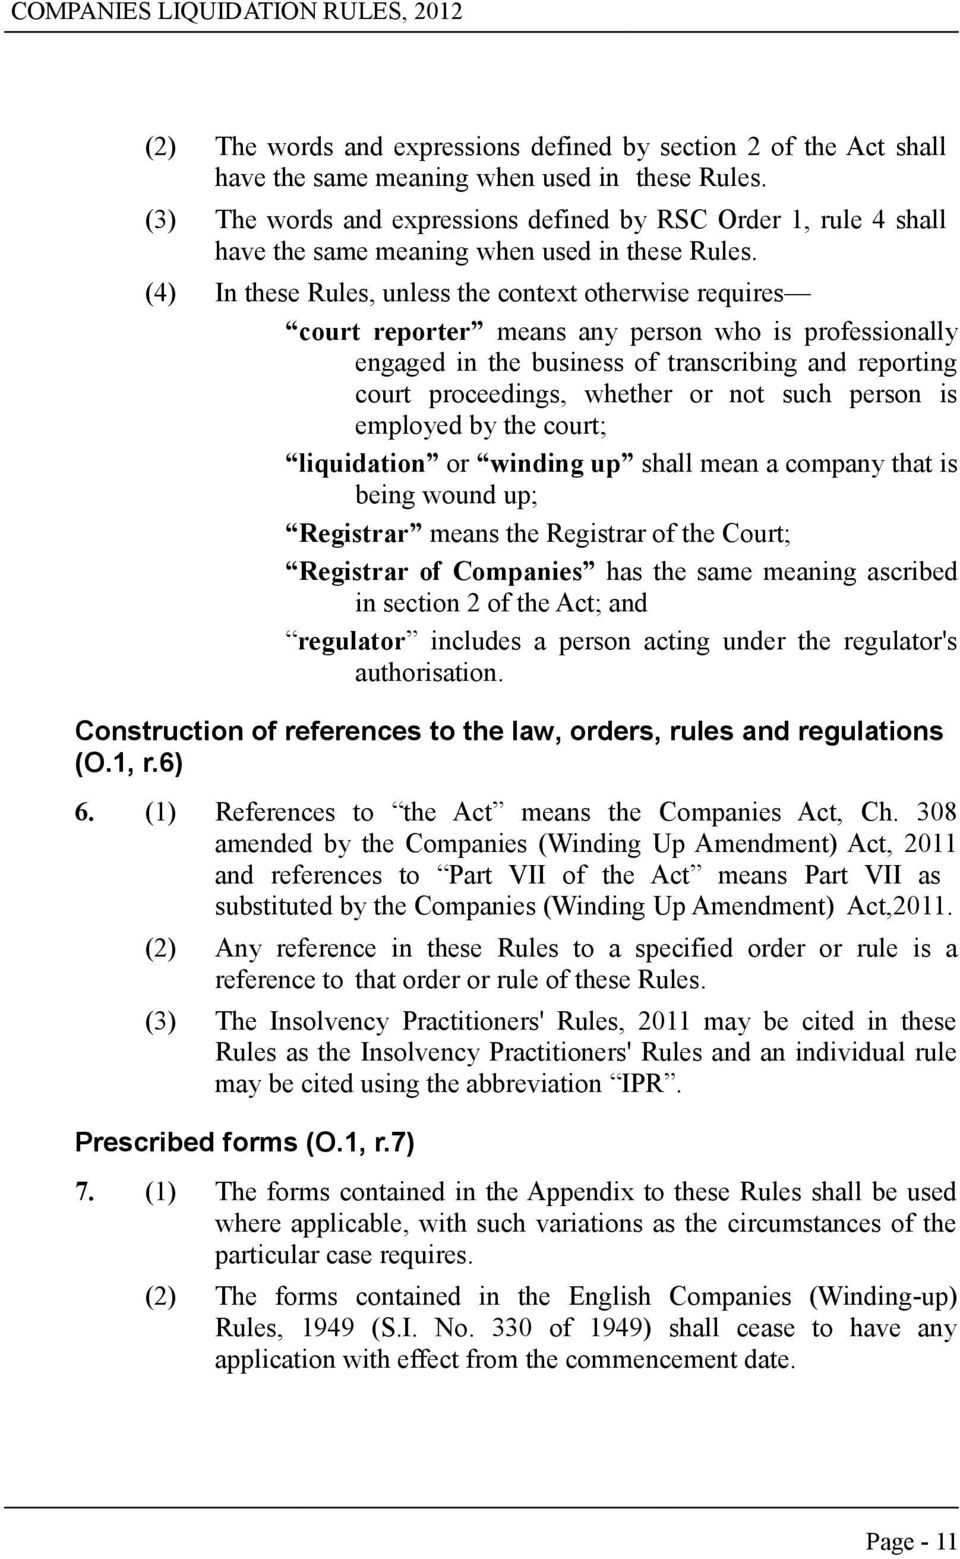 (4) In these Rules, unless the context otherwise requires court reporter means any person who is professionally engaged in the business of transcribing and reporting court proceedings, whether or not